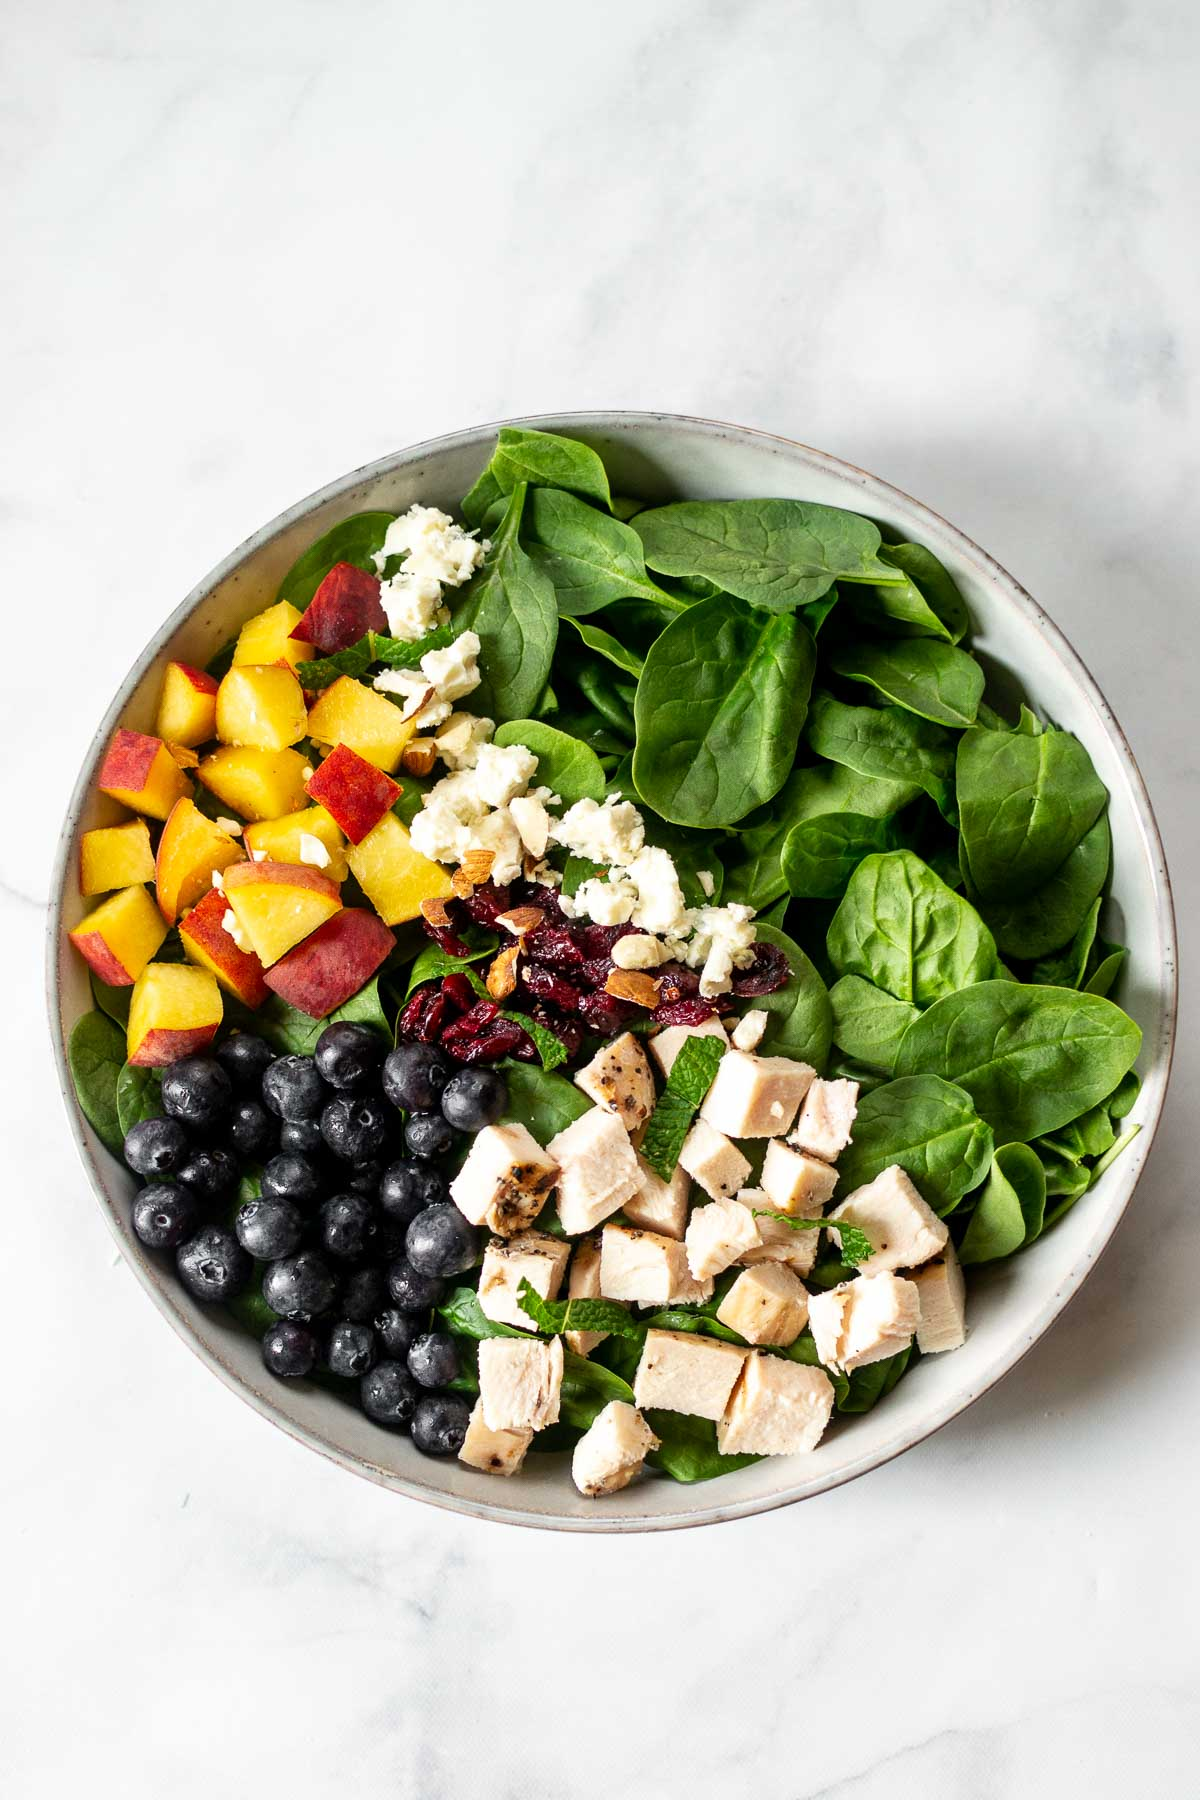 All of the salad ingredients in one bowl